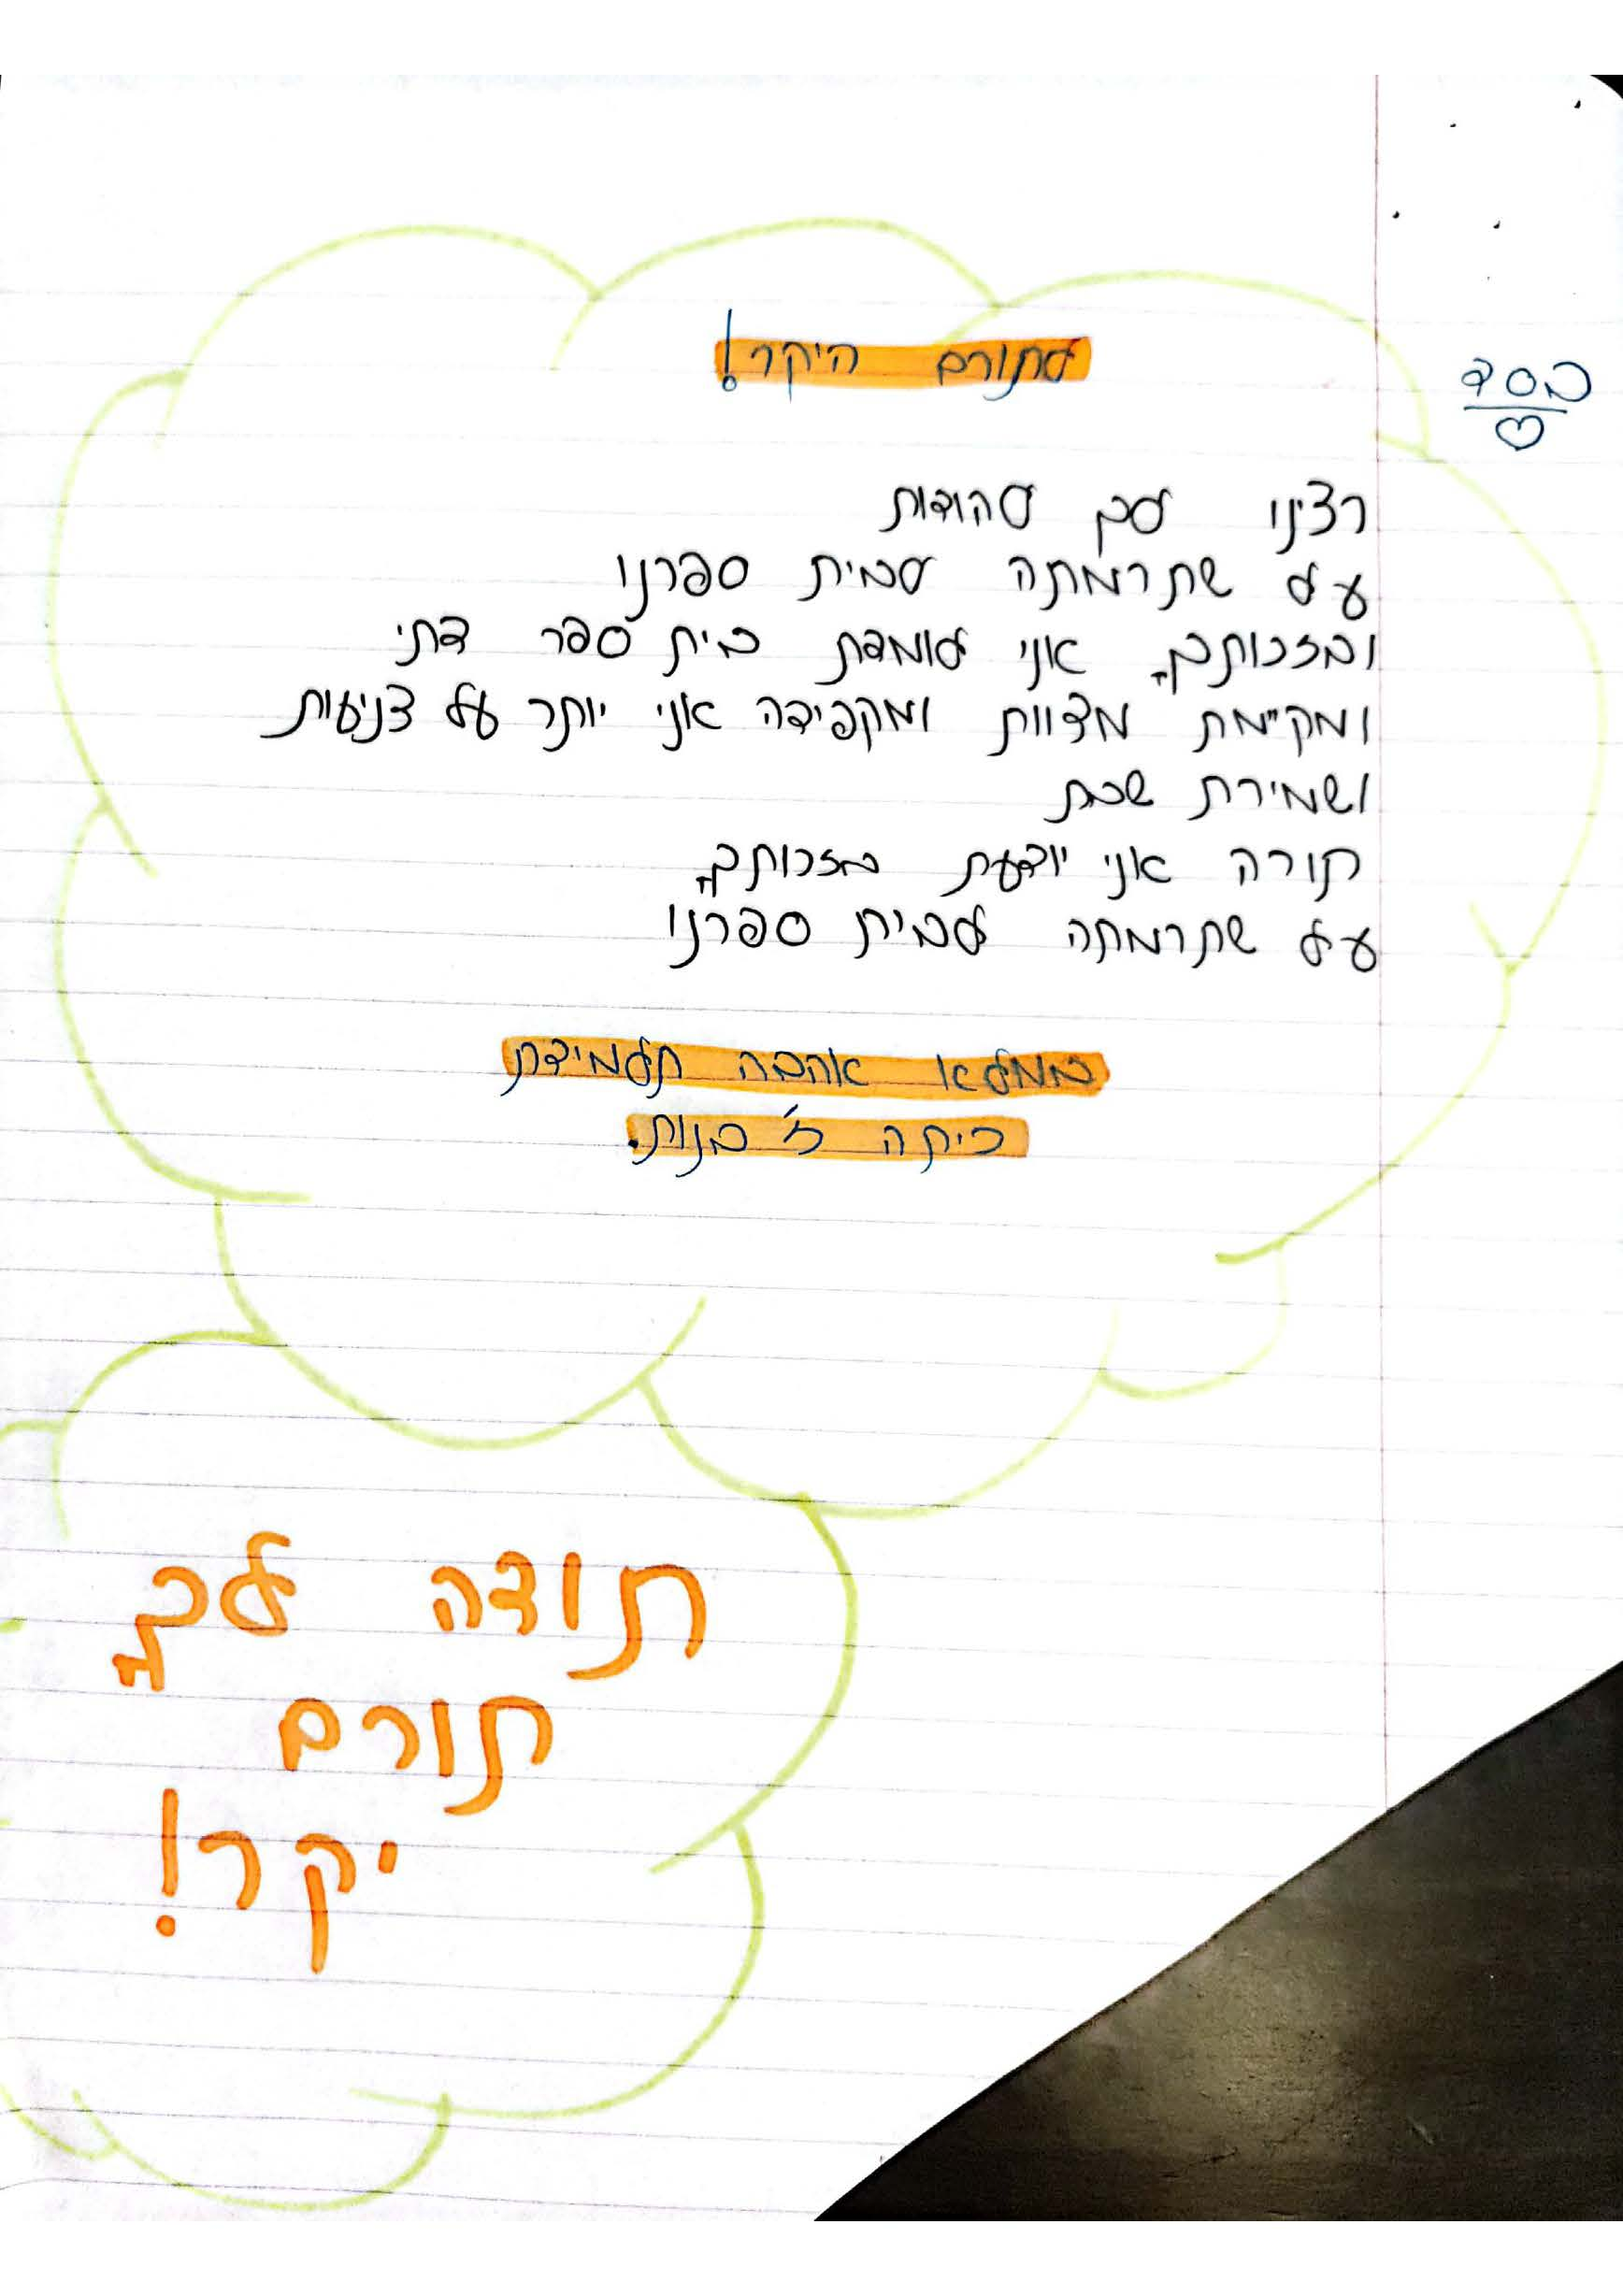 CamScanner 07-28-2021 09.08_Page_09